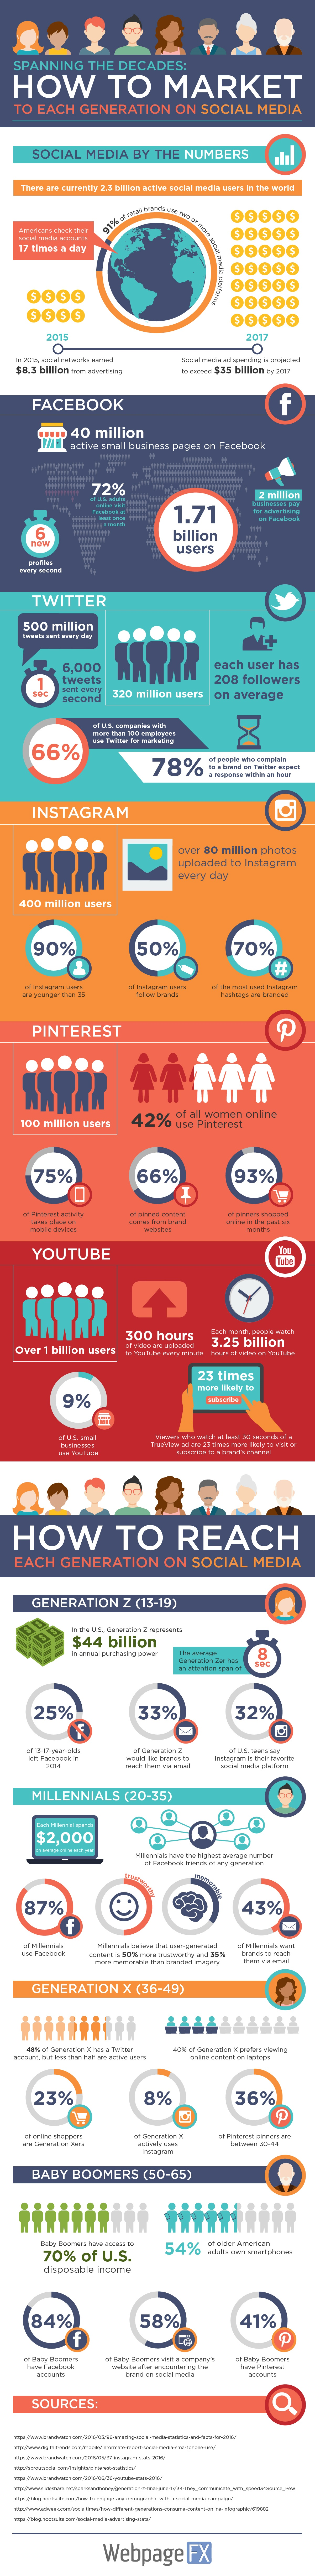 How to Market to Each Generation on Social Media [Infographic] | Social Media Today